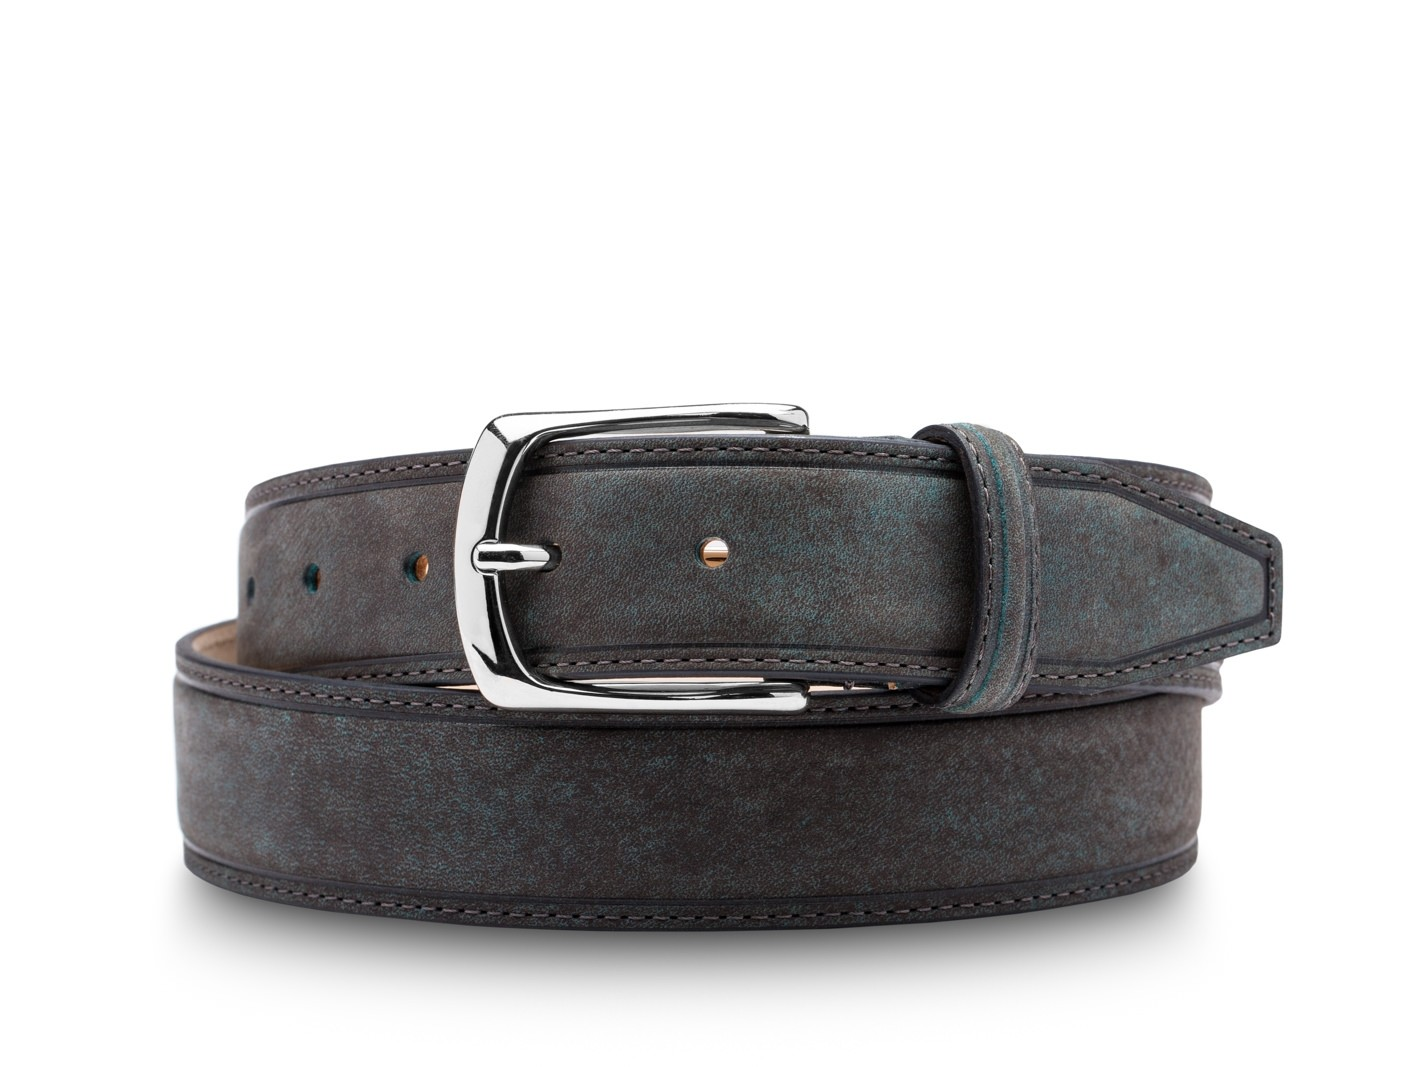 The Allegro Belt